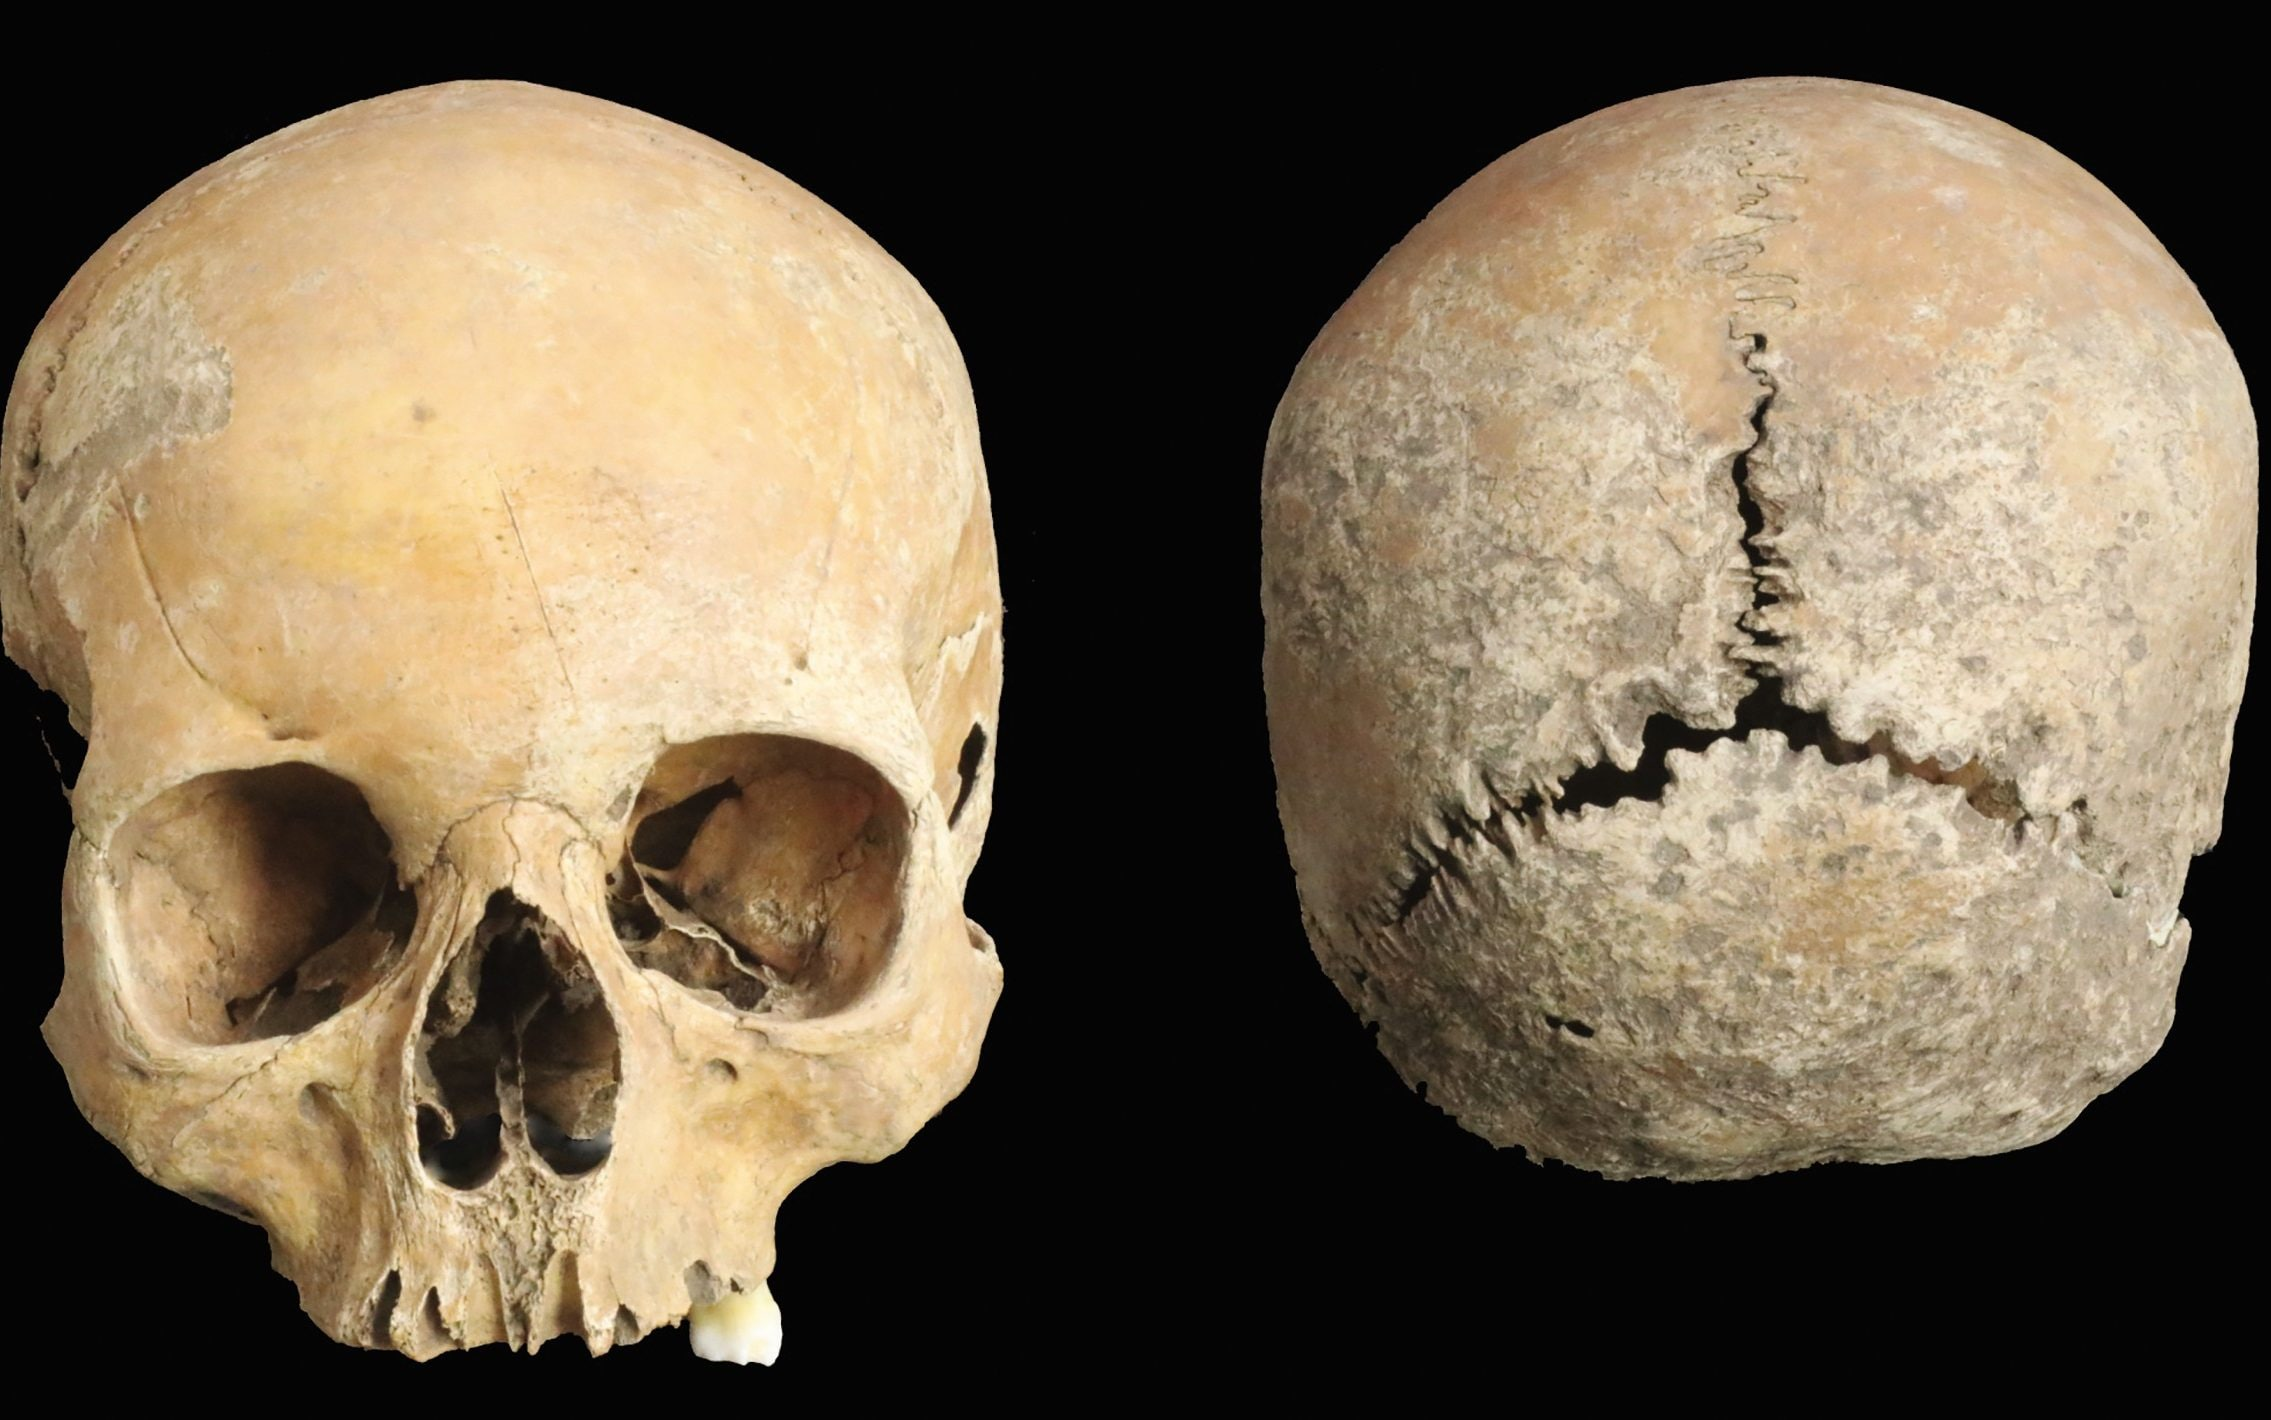 Anglo-Saxon skull found with nose and lips cut off is first physical evidence of brutal punishment for adultery